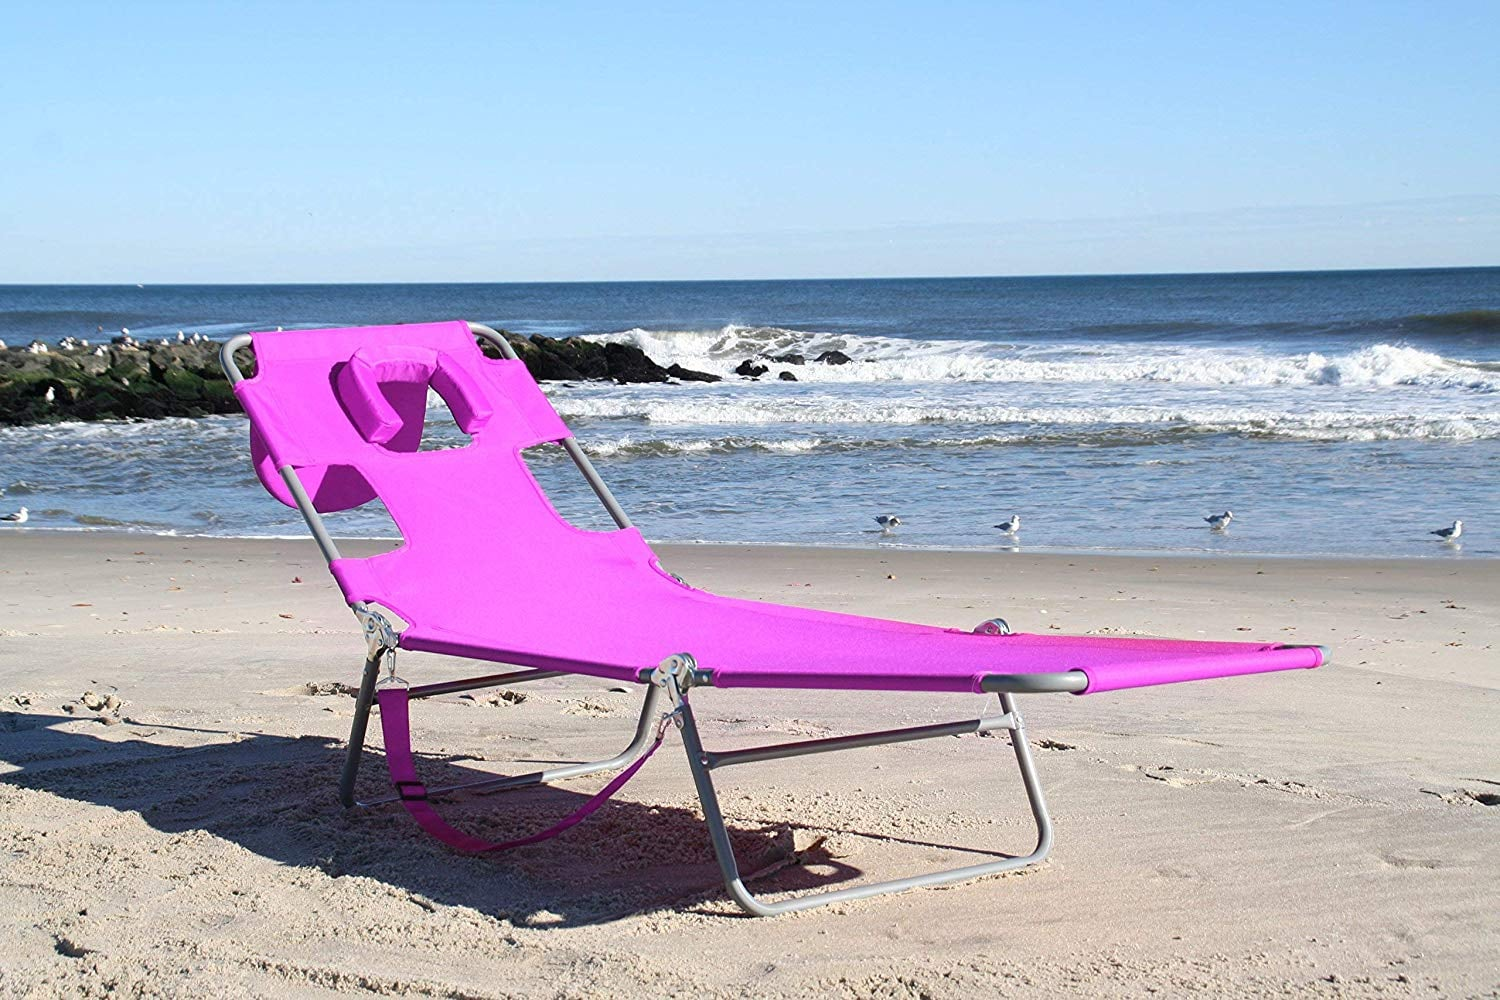 Buy The Ostrich Chaise Lounge In Pink This Beach Chair With A Face Hole Is A 1 Best Seller On Amazon So Yeah I M Sold Popsugar Smart Living Photo 8